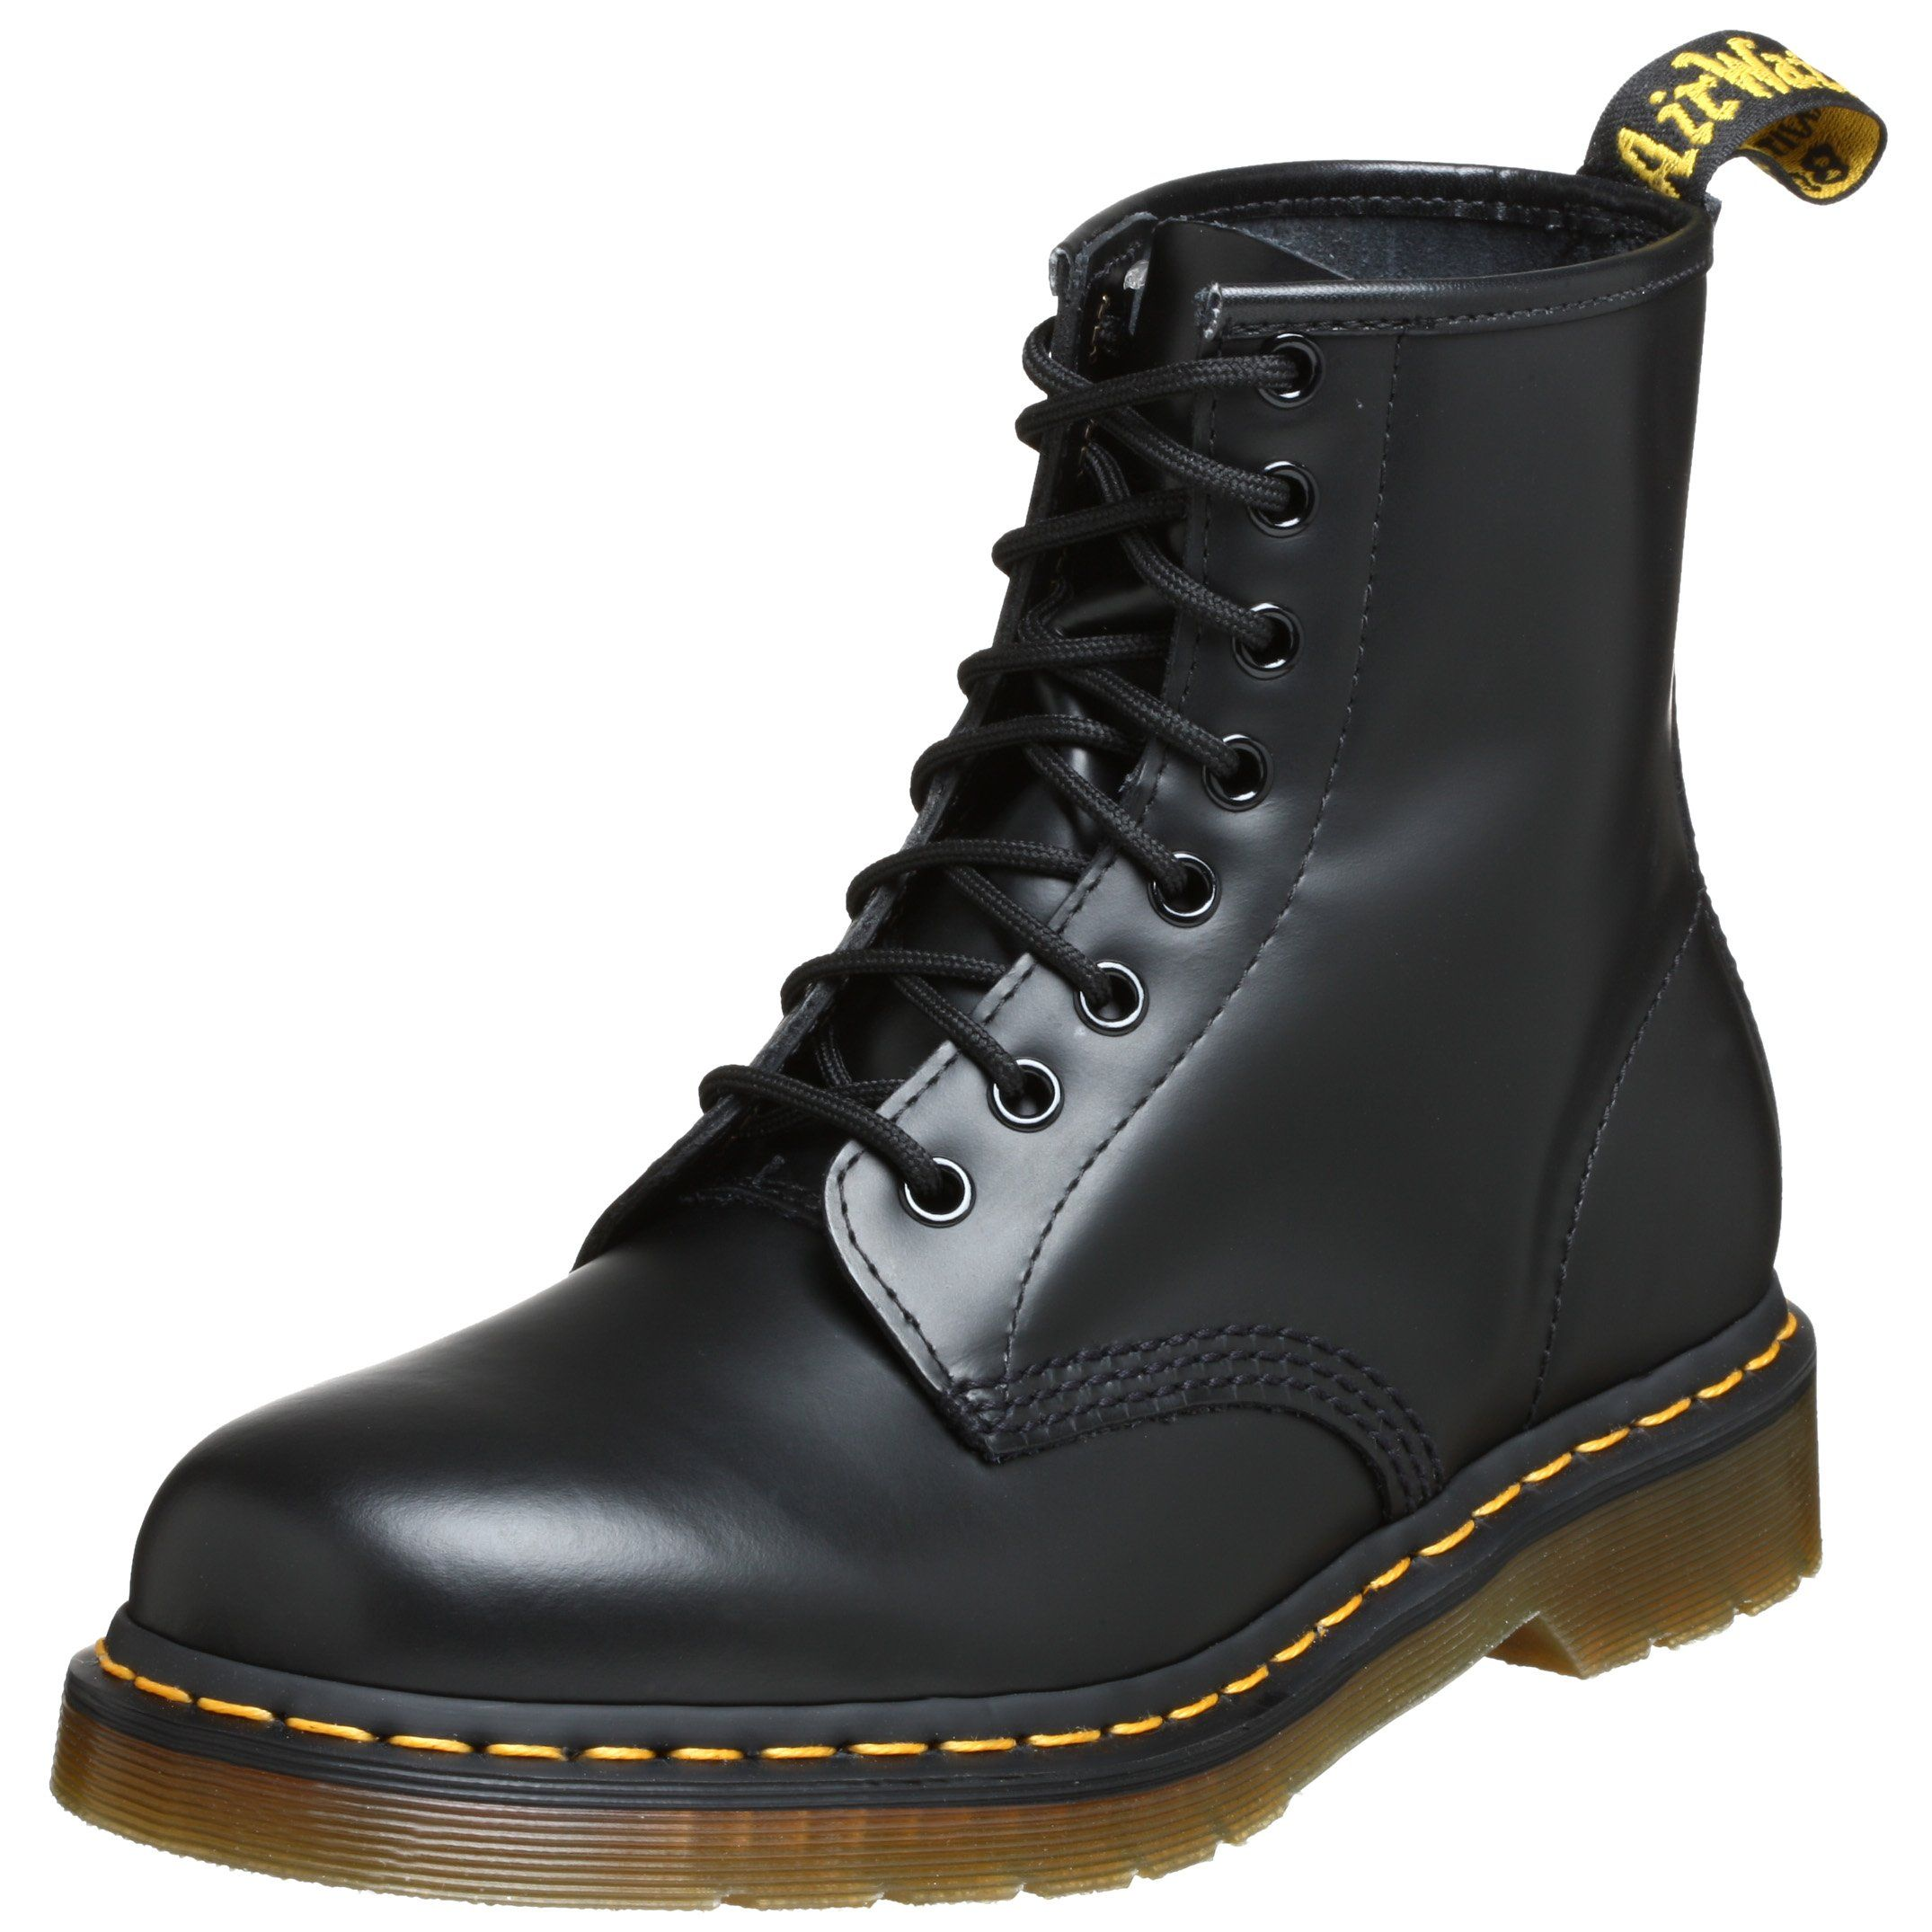 Dr. Martens 1460 Originals 8 Eye Lace Up Boot,Black Smooth Leather,9 UK (US Women's 11 M/US Men's 10 M)